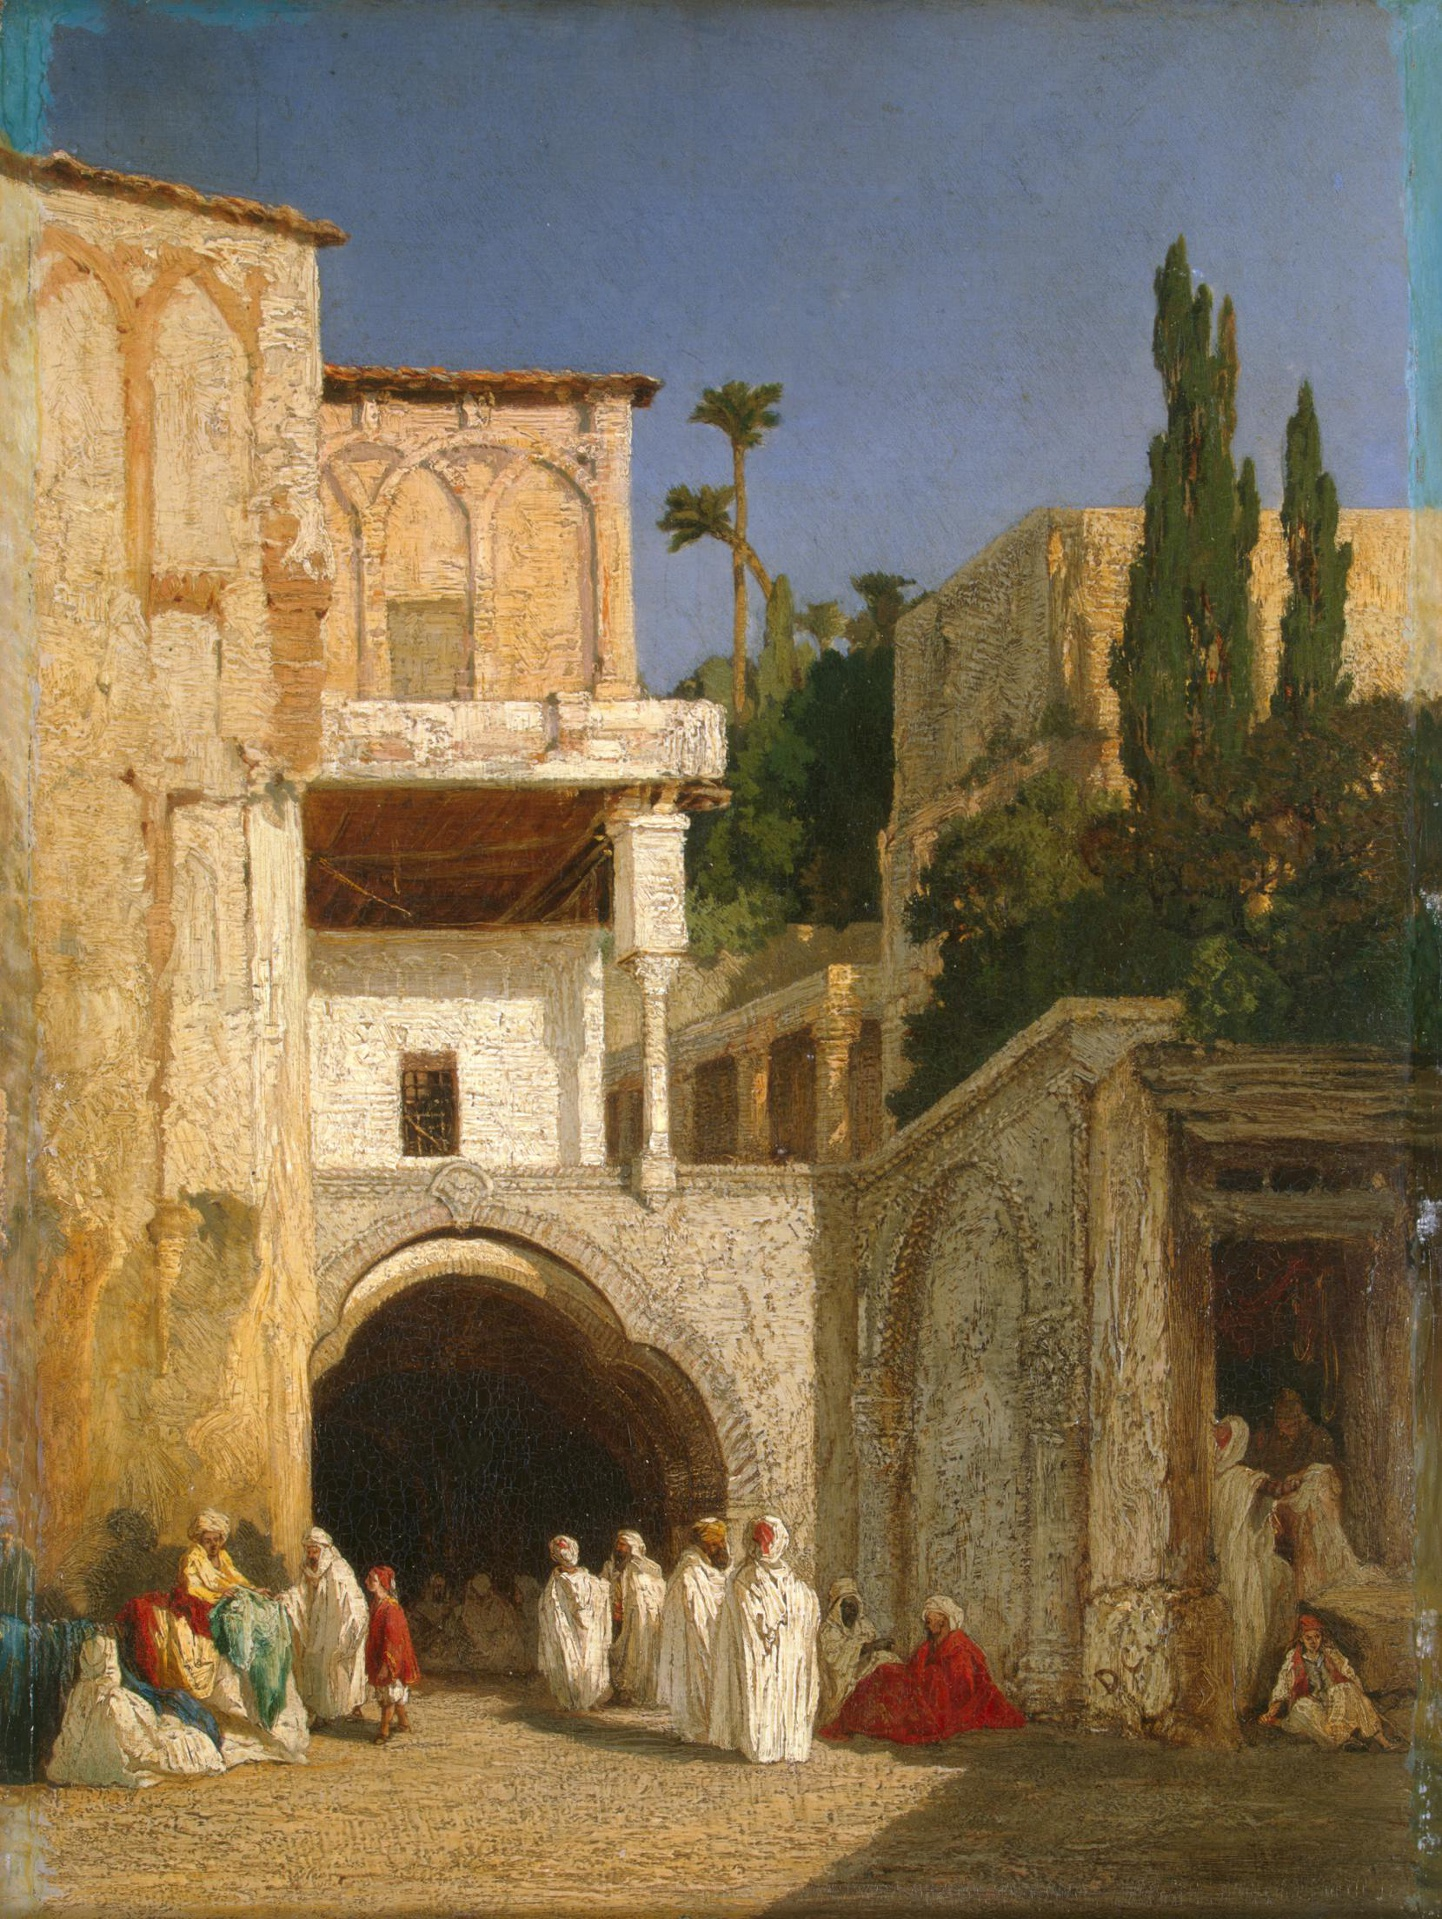 Before a Mosque (Cairo) :: Alexandre-Gabriel Decamps - scenes of Oriental life (Orientalism) in art and painting ôîòî